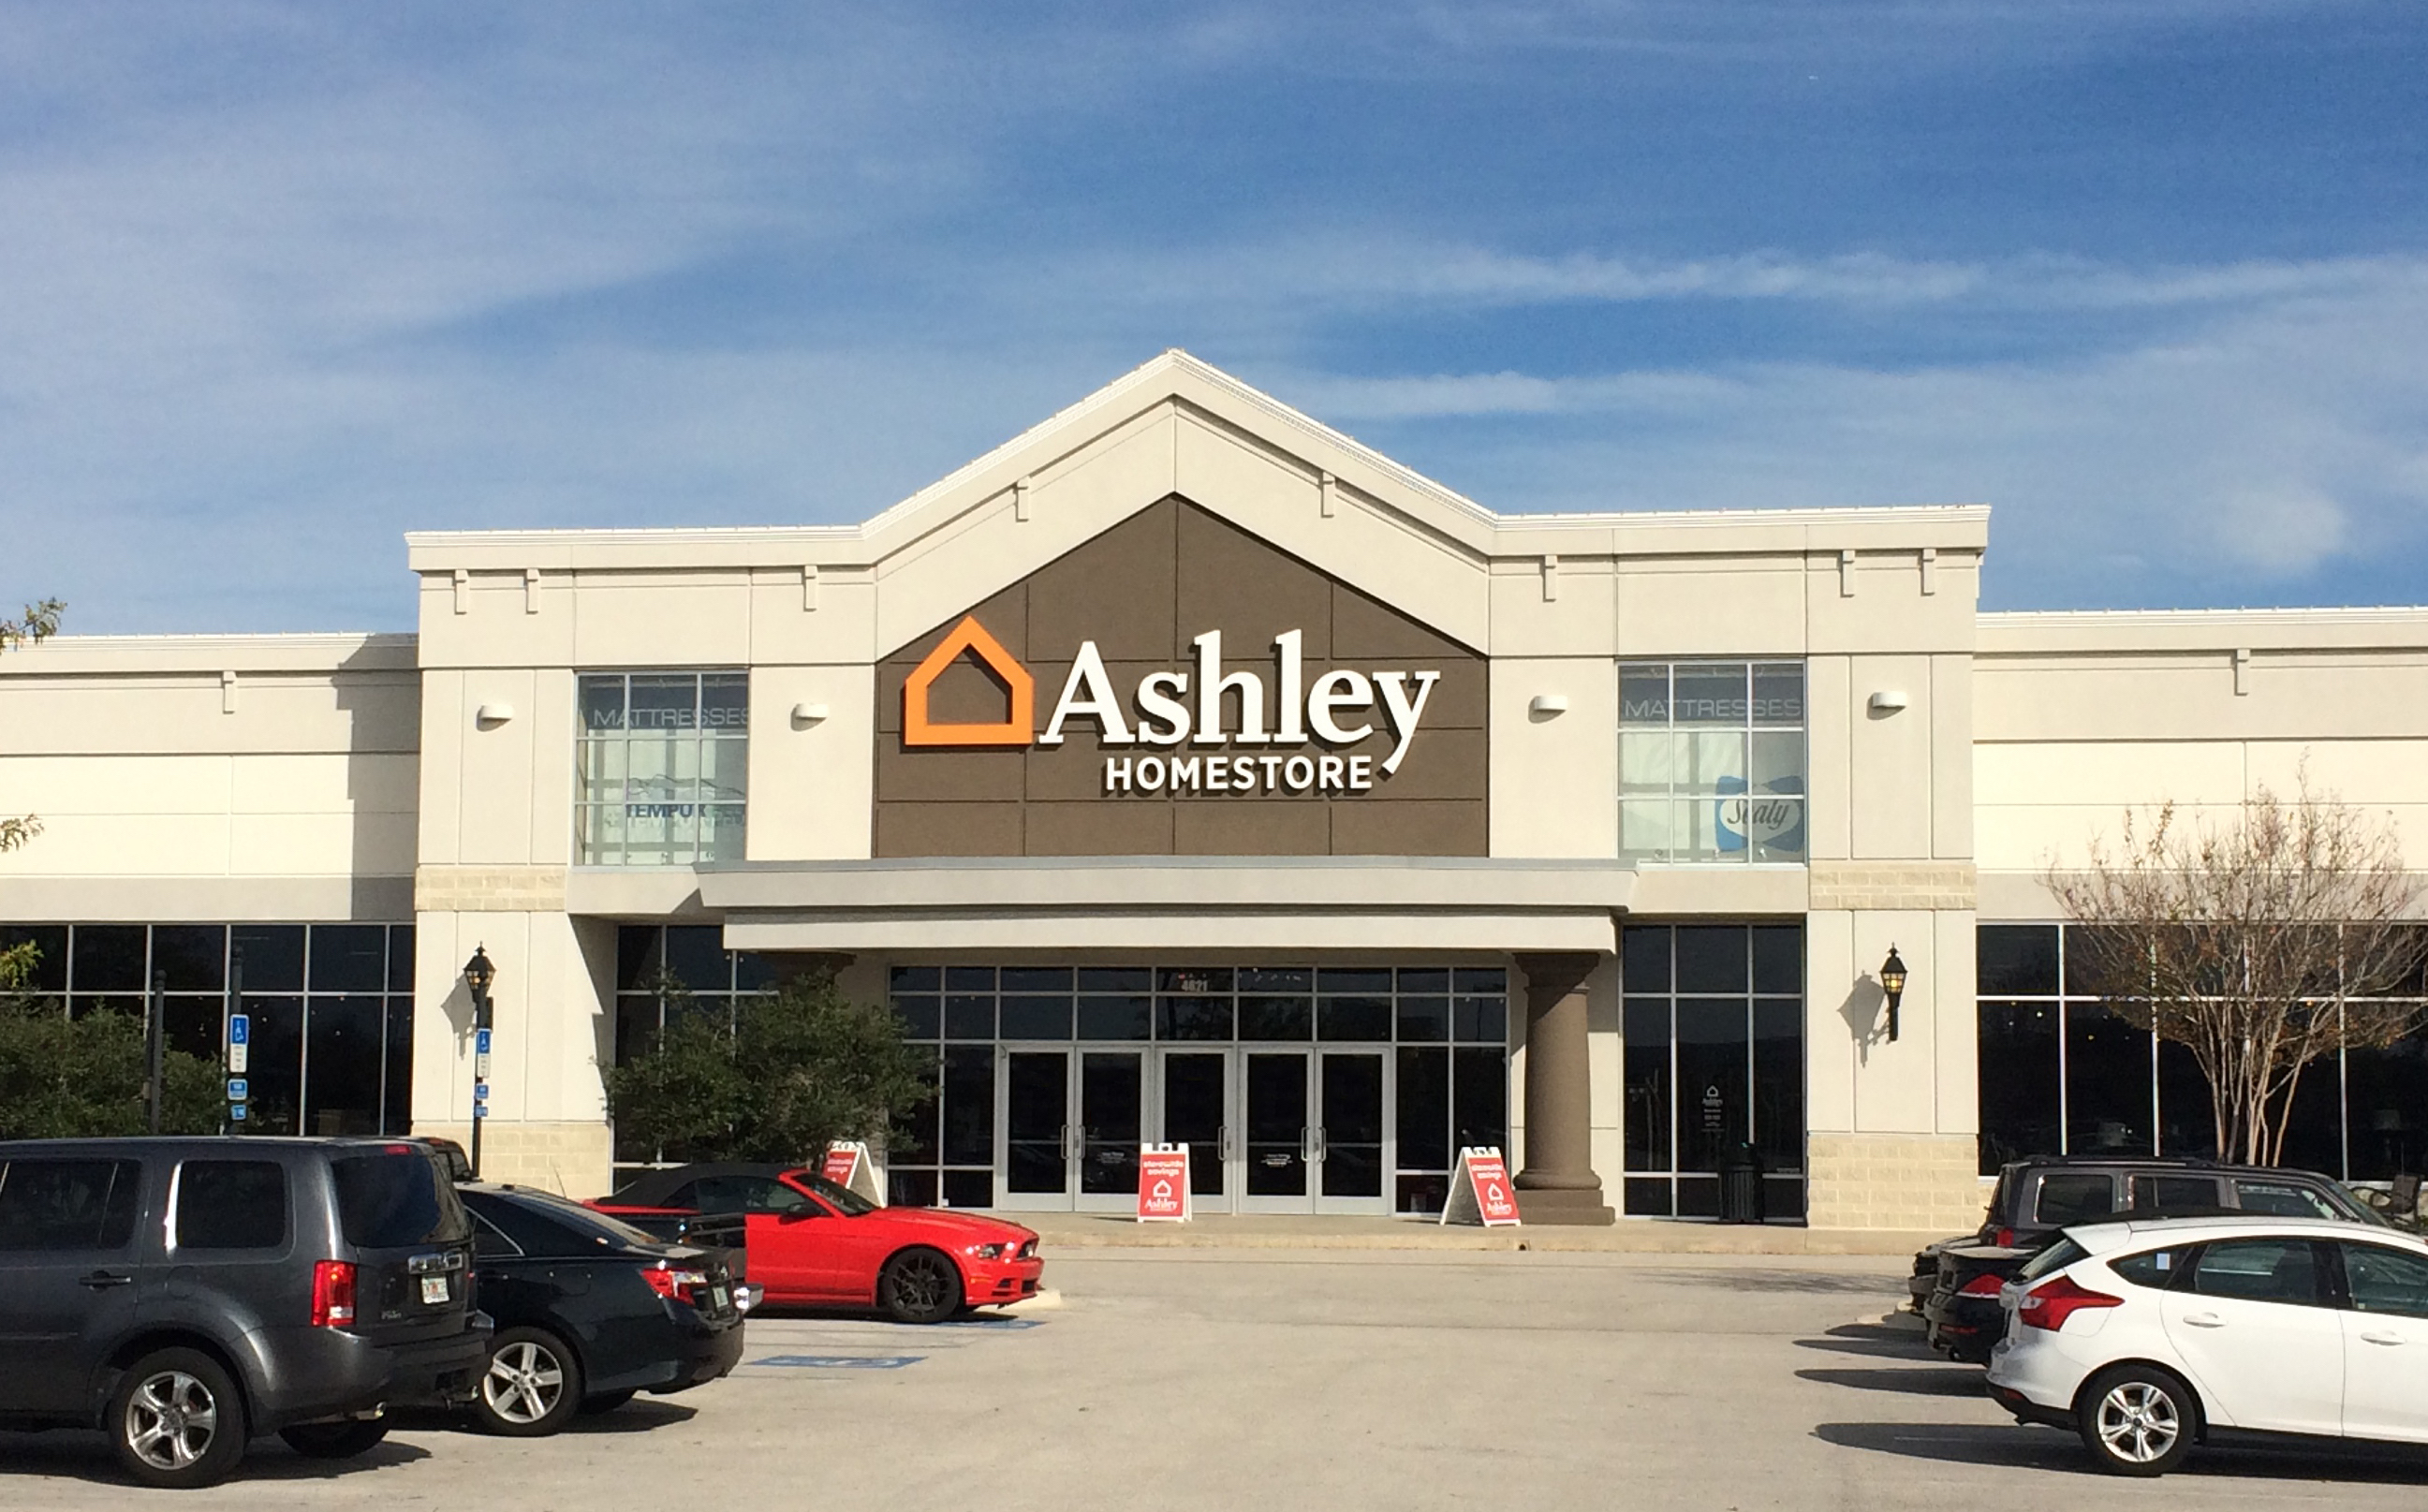 Ashley HomeStore 4621 River City Dr Jacksonville FL